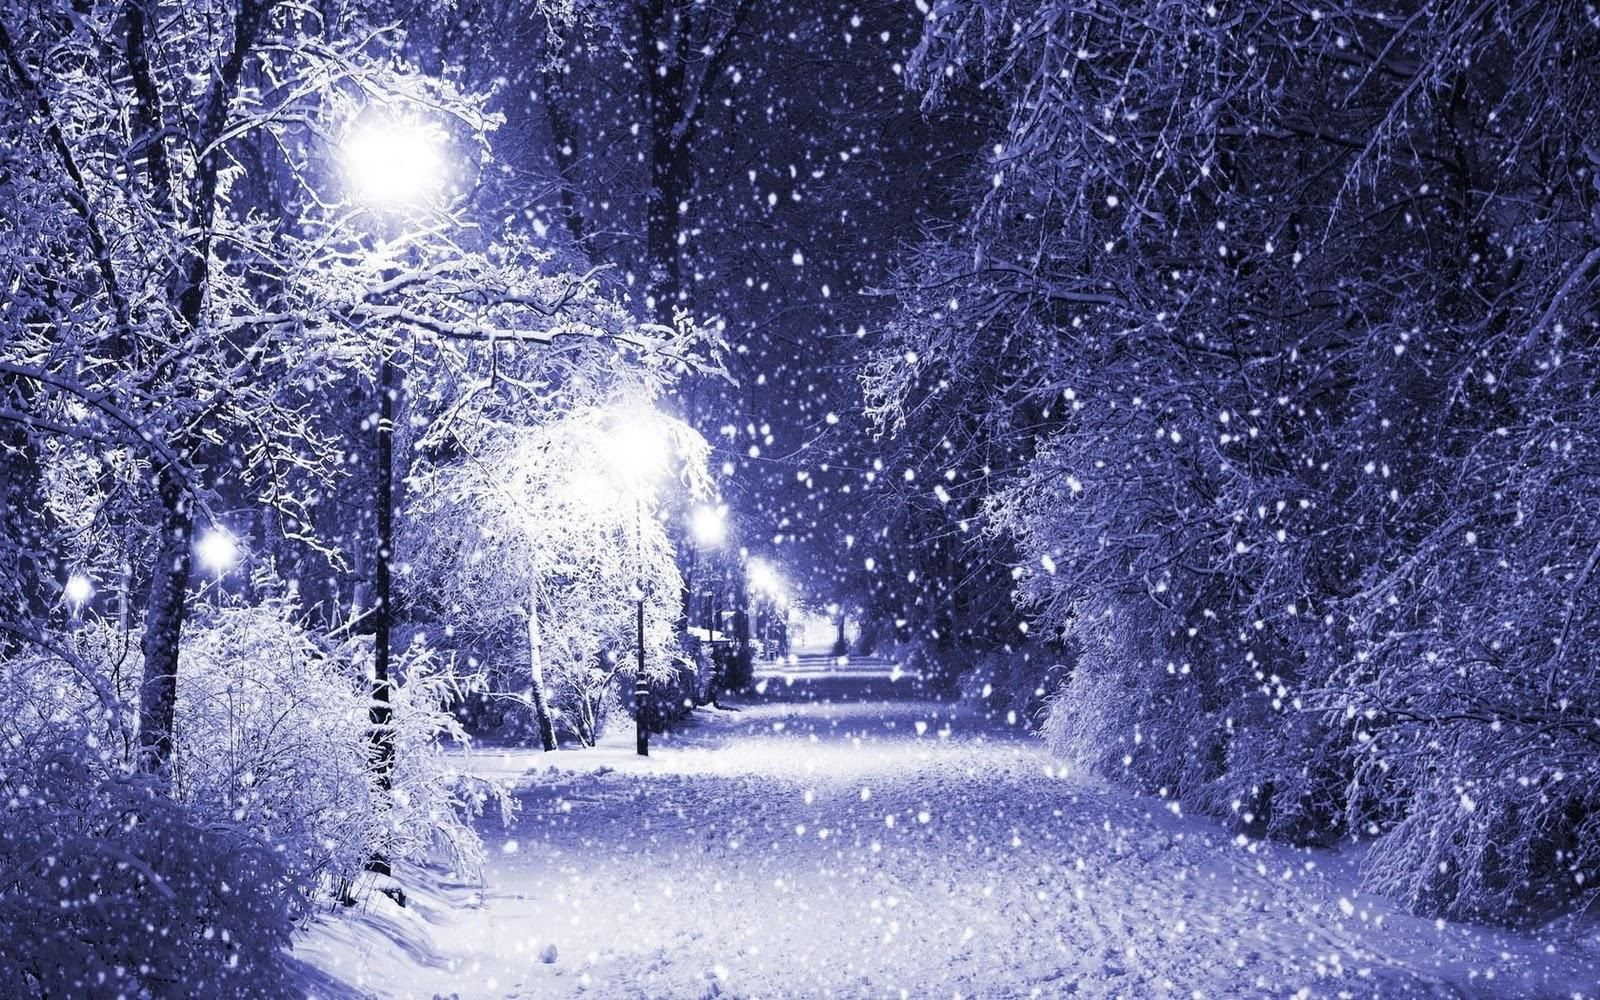 World Most Beautiful Snow Scenes Night Scene Wallpapers